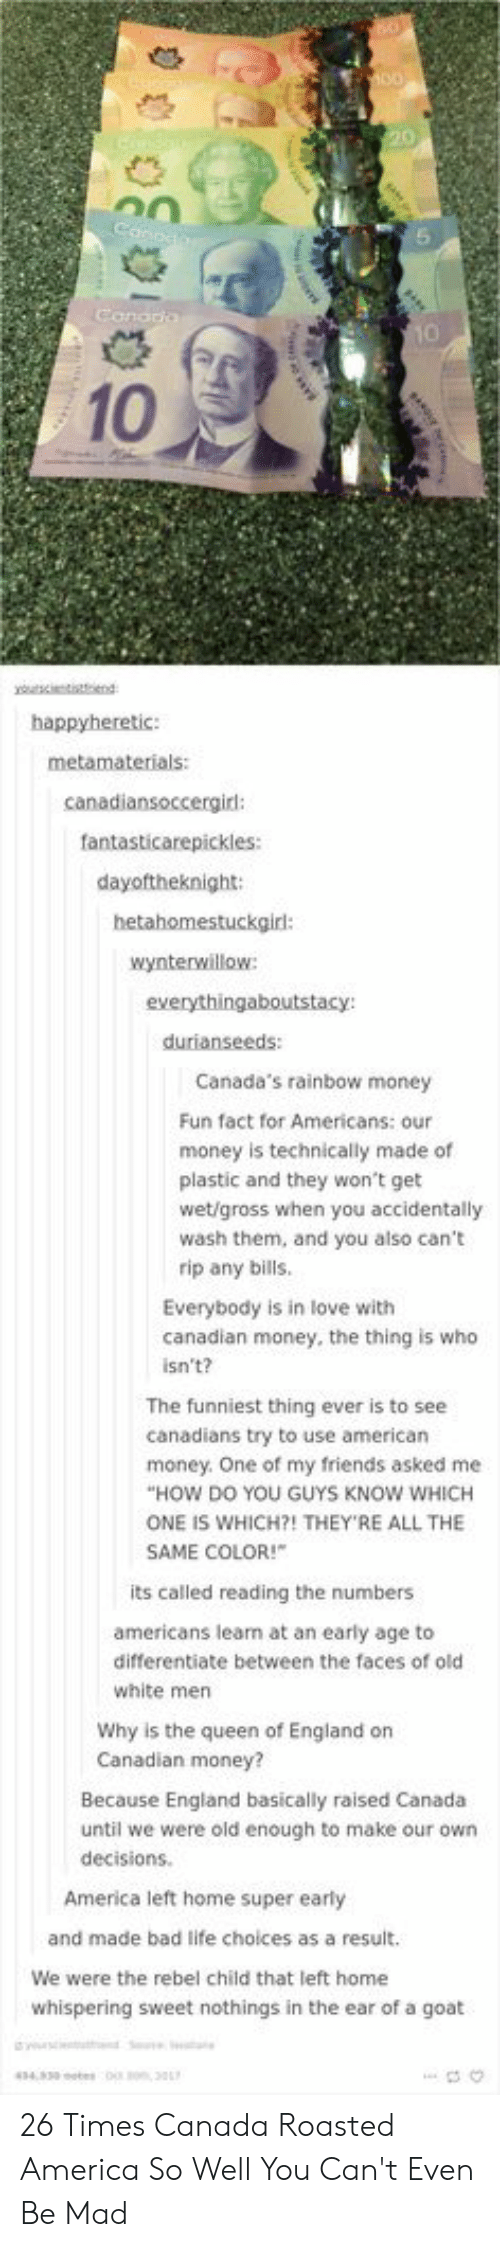 Queen Of: 10  happyheretic:  canadiansoccergird:  fantasticarepickles:  dayoftheknight:  hetahomestuckgir:  wynterwillow  durianseeds:  Canada's rainbow money  Fun fact for Americans: our  money is technically made of  plastic and they won't get  wet/gross when you accidentally  wash them, and you also can't  rip any bills  Everybody is in love with  canadian money, the thing is who  isn't?  The funniest thing ever is to see  canadians try to use american  HOW DO YOU GUYS KNOW WHICH  SAME COLOR!  money. One of my friends asked me  ONE IS WHICH?! THEY'RE ALL THE  its called reading the numbers  americans learn at an early age to  differentiate between the faces of old  white men  Why is the queen of England on  Canadian money?  Because England basically raised Canada  until we were old enough to make our own  decisions.  America left home super early  and made bad life choices as a result.  We were the rebel child that left home  whispering sweet nothings in the ear of a goat 26 Times Canada Roasted America So Well You Can't Even Be Mad